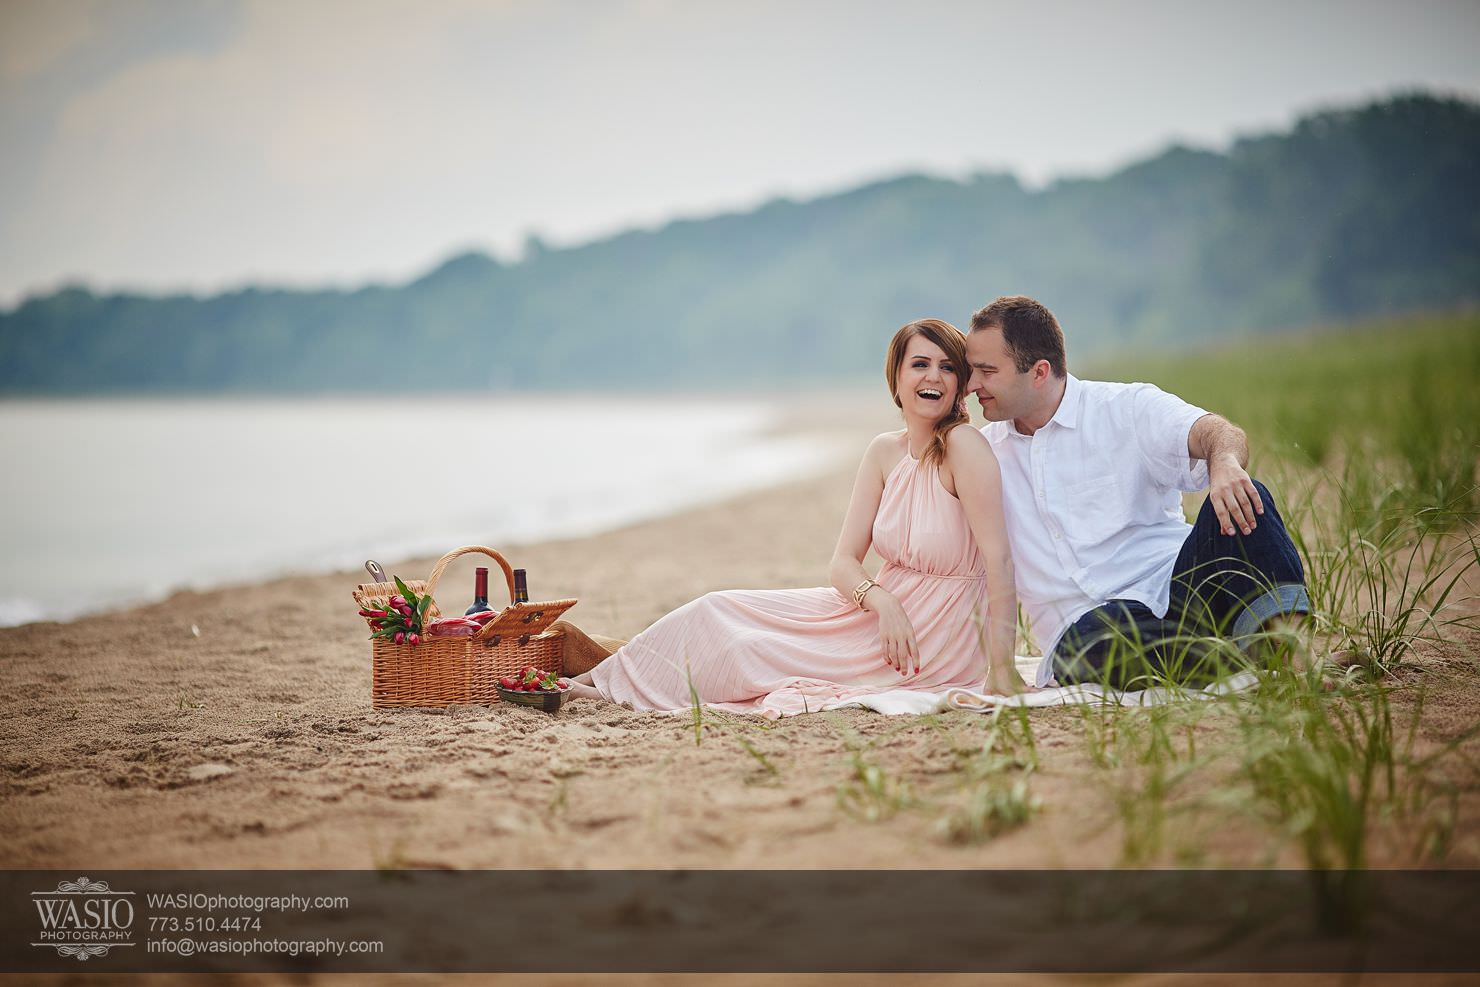 Michigan Engagement – Ewa & Marek